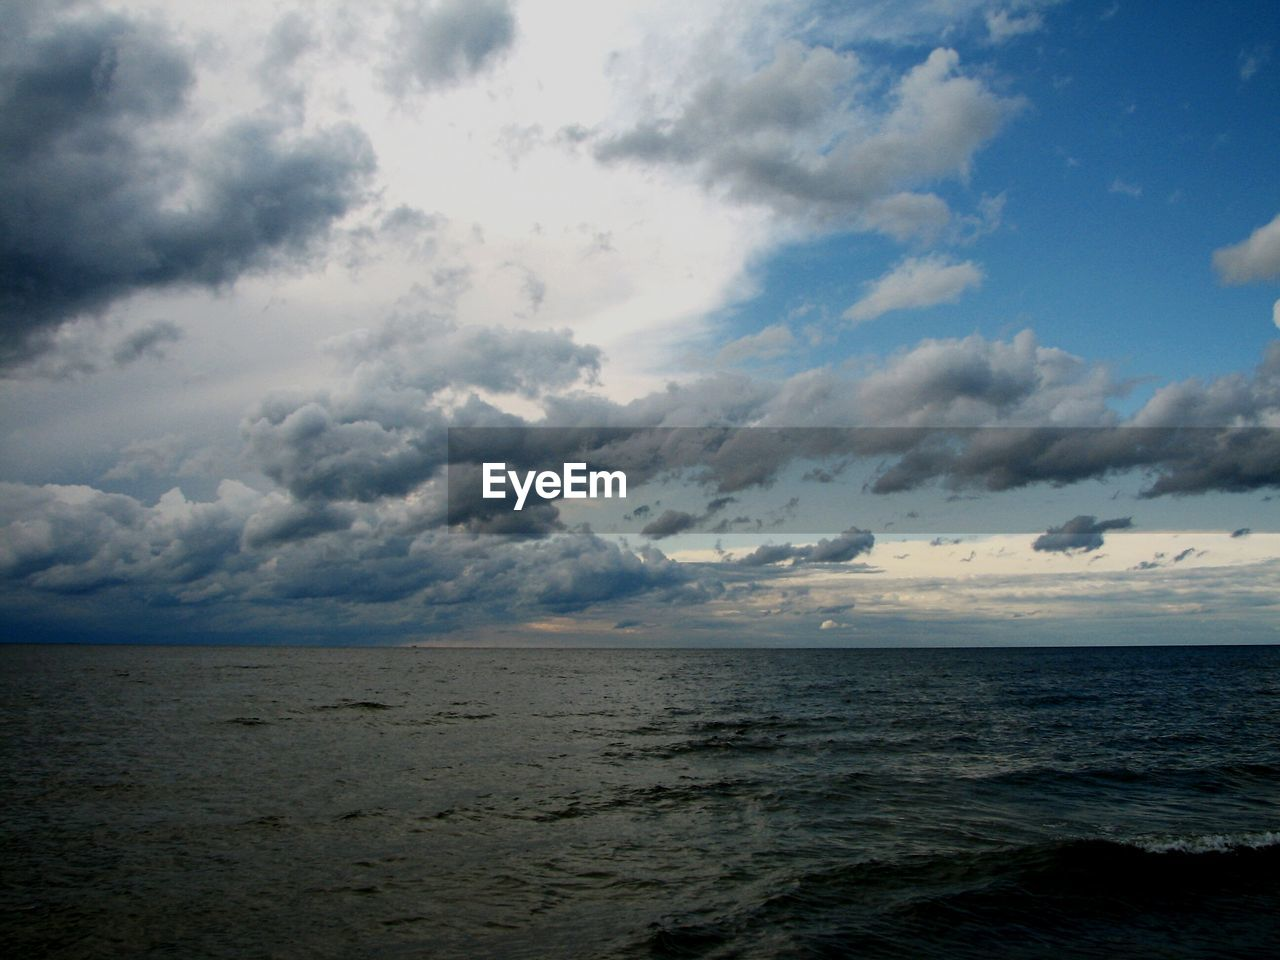 sea, horizon over water, sky, beach, beauty in nature, scenics, nature, water, tranquil scene, cloud - sky, tranquility, no people, outdoors, horizon, landscape, day